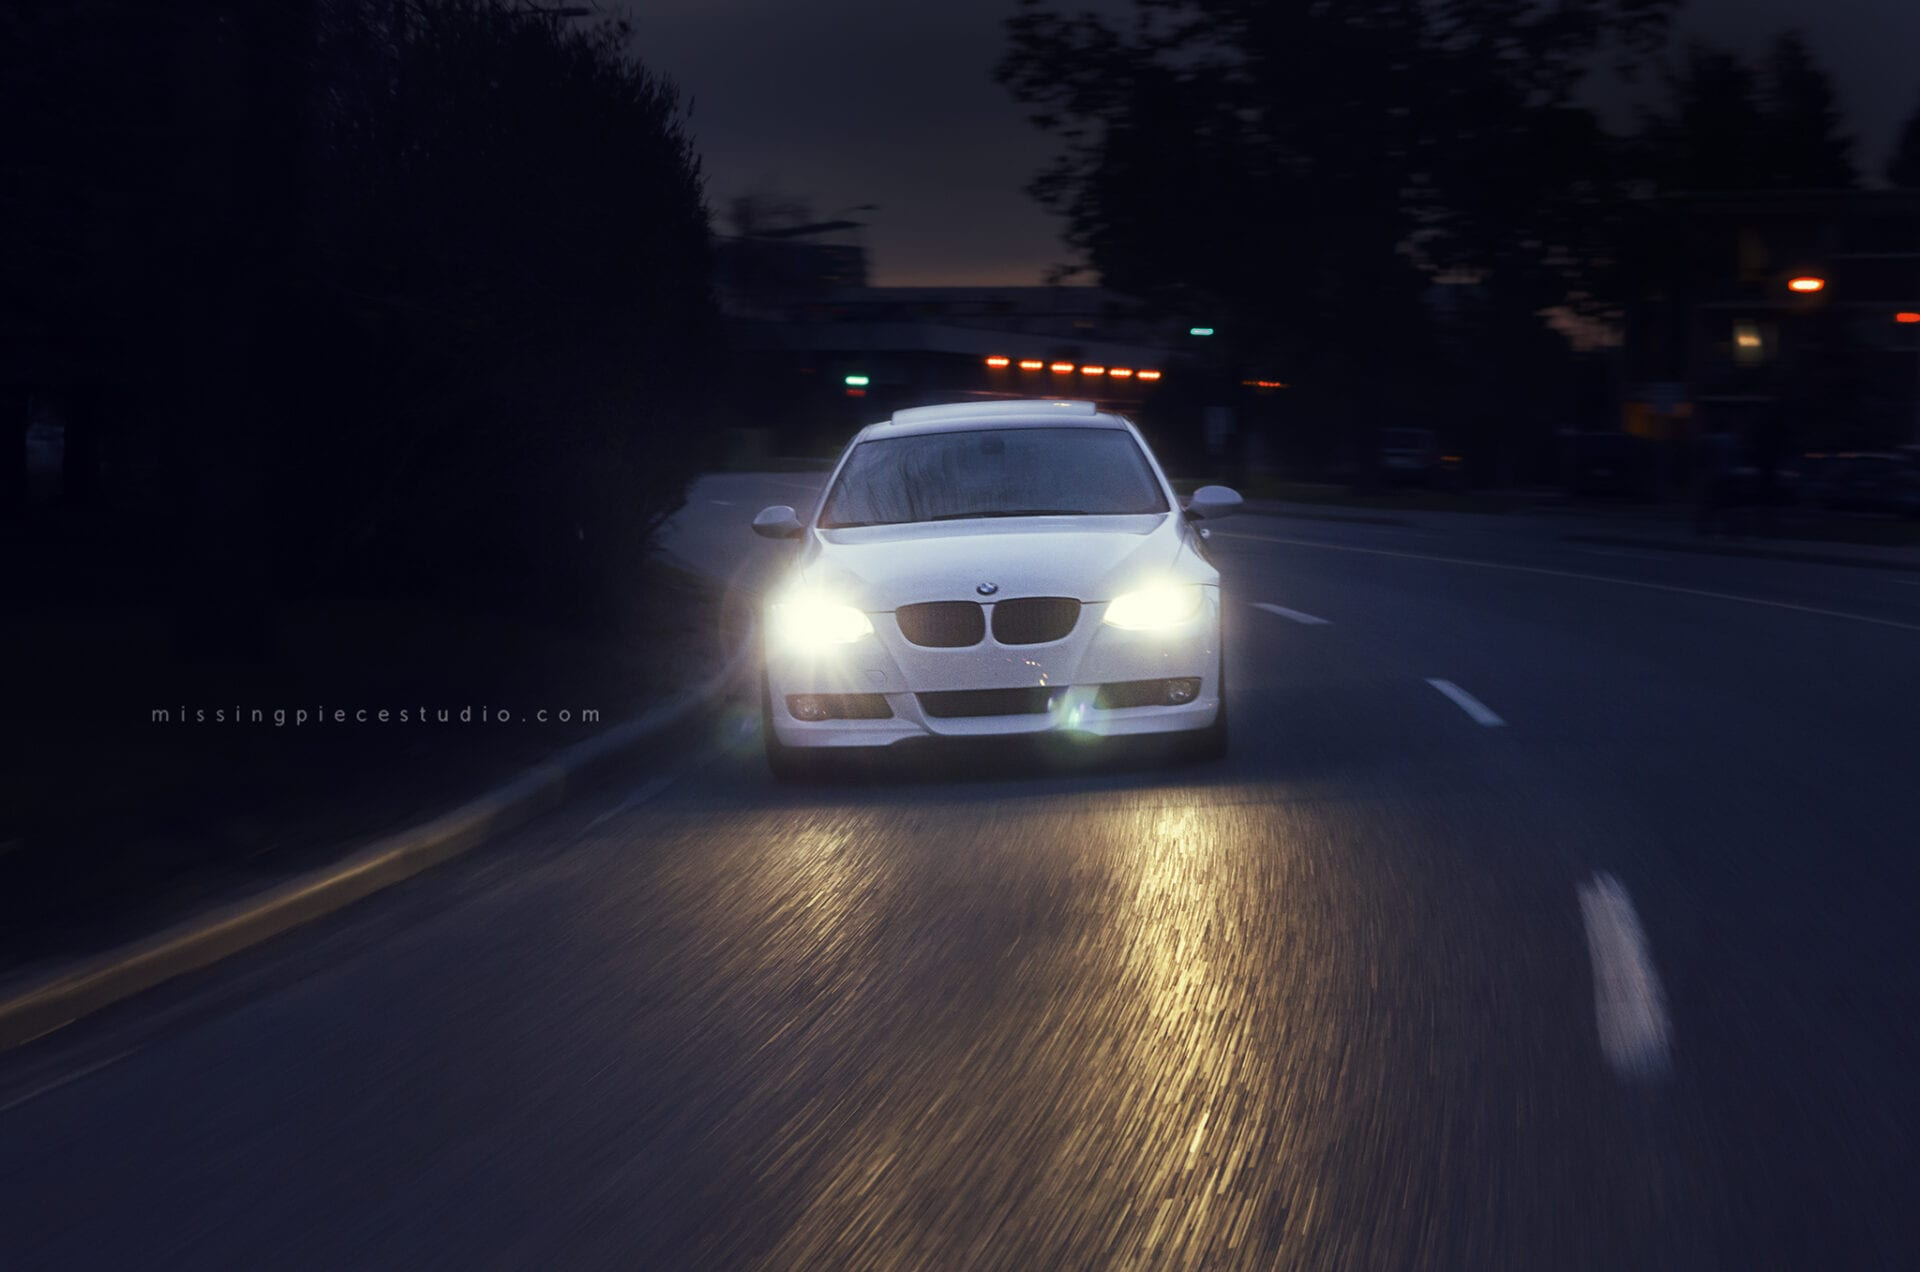 A white BMW 335i going down a curved road